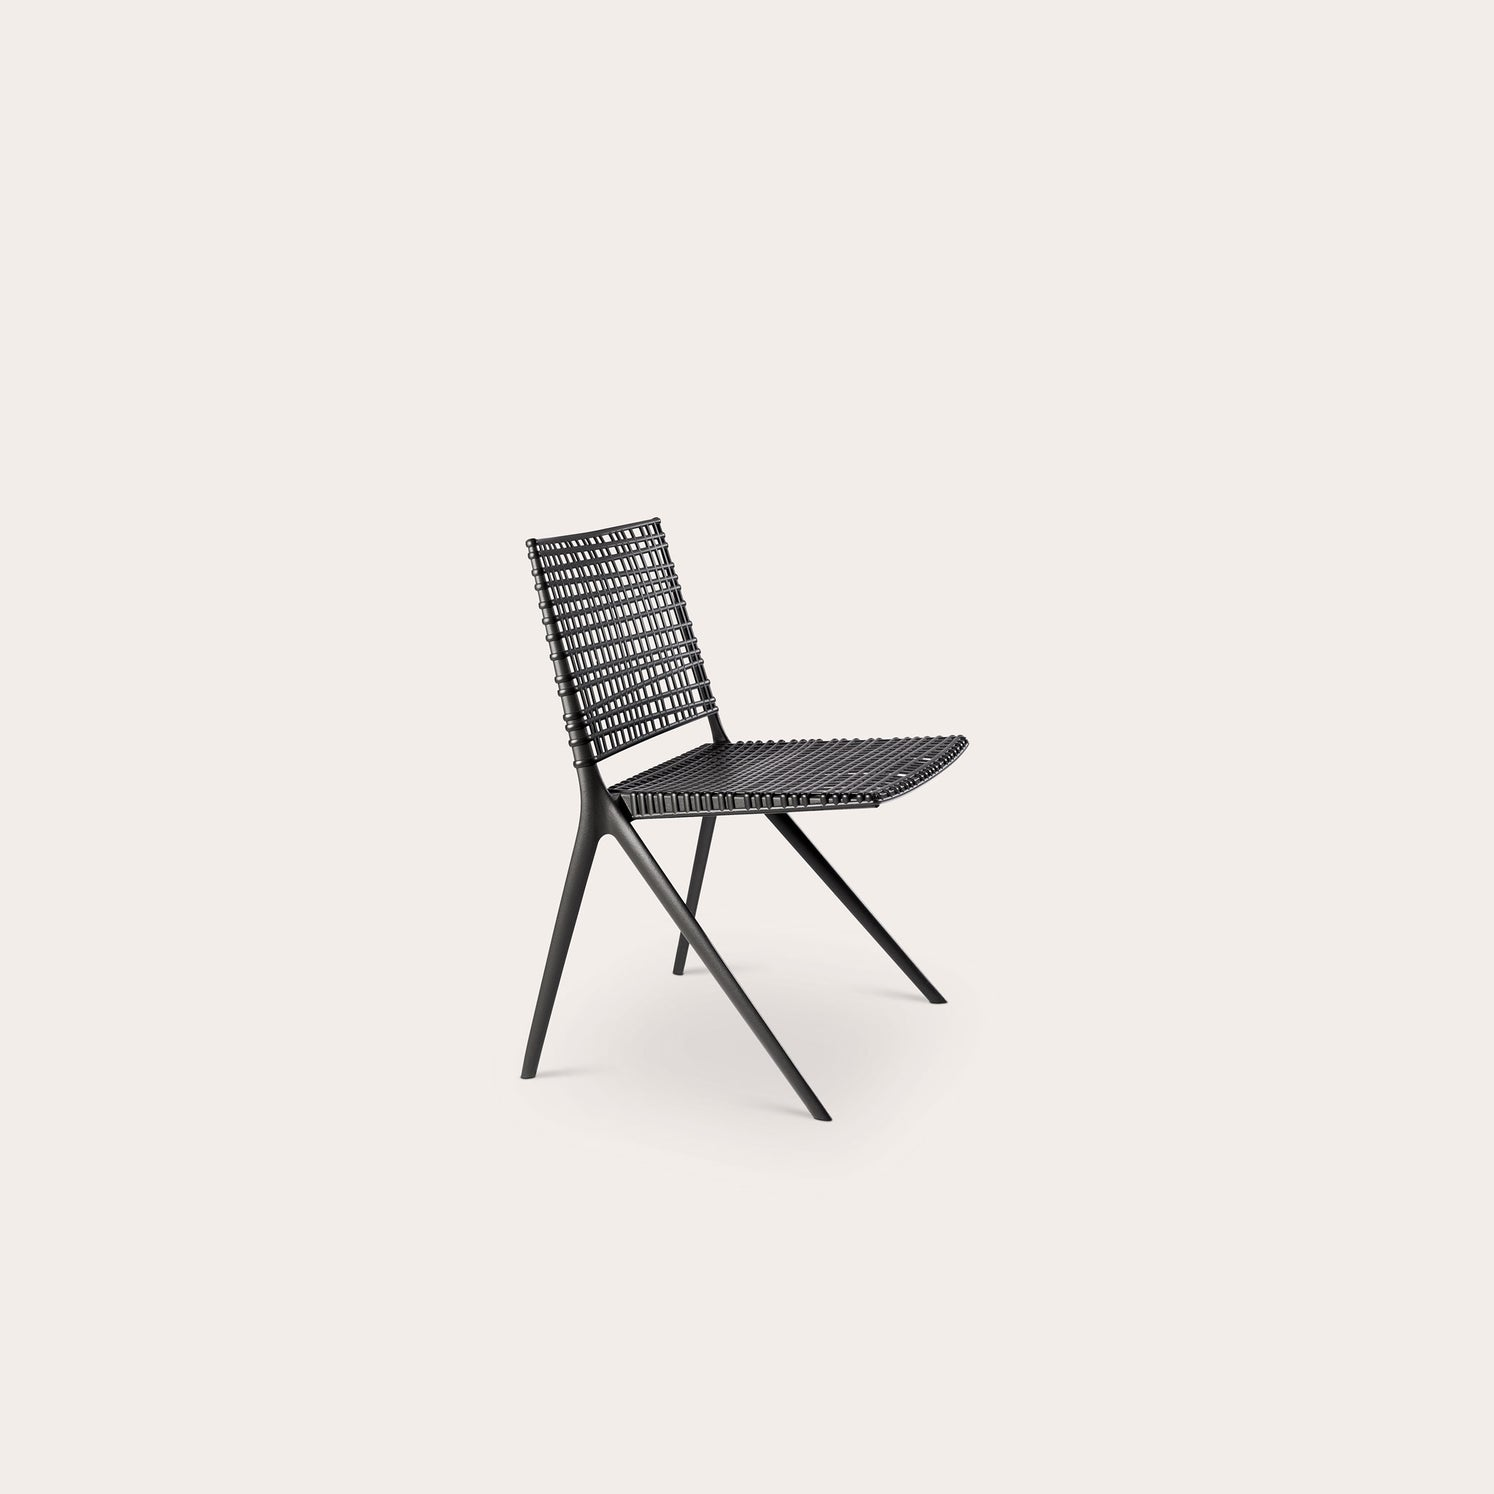 BRANCH Side Chair Outdoor Altherr Lievore Molina Designer Furniture Sku: 007-200-10139